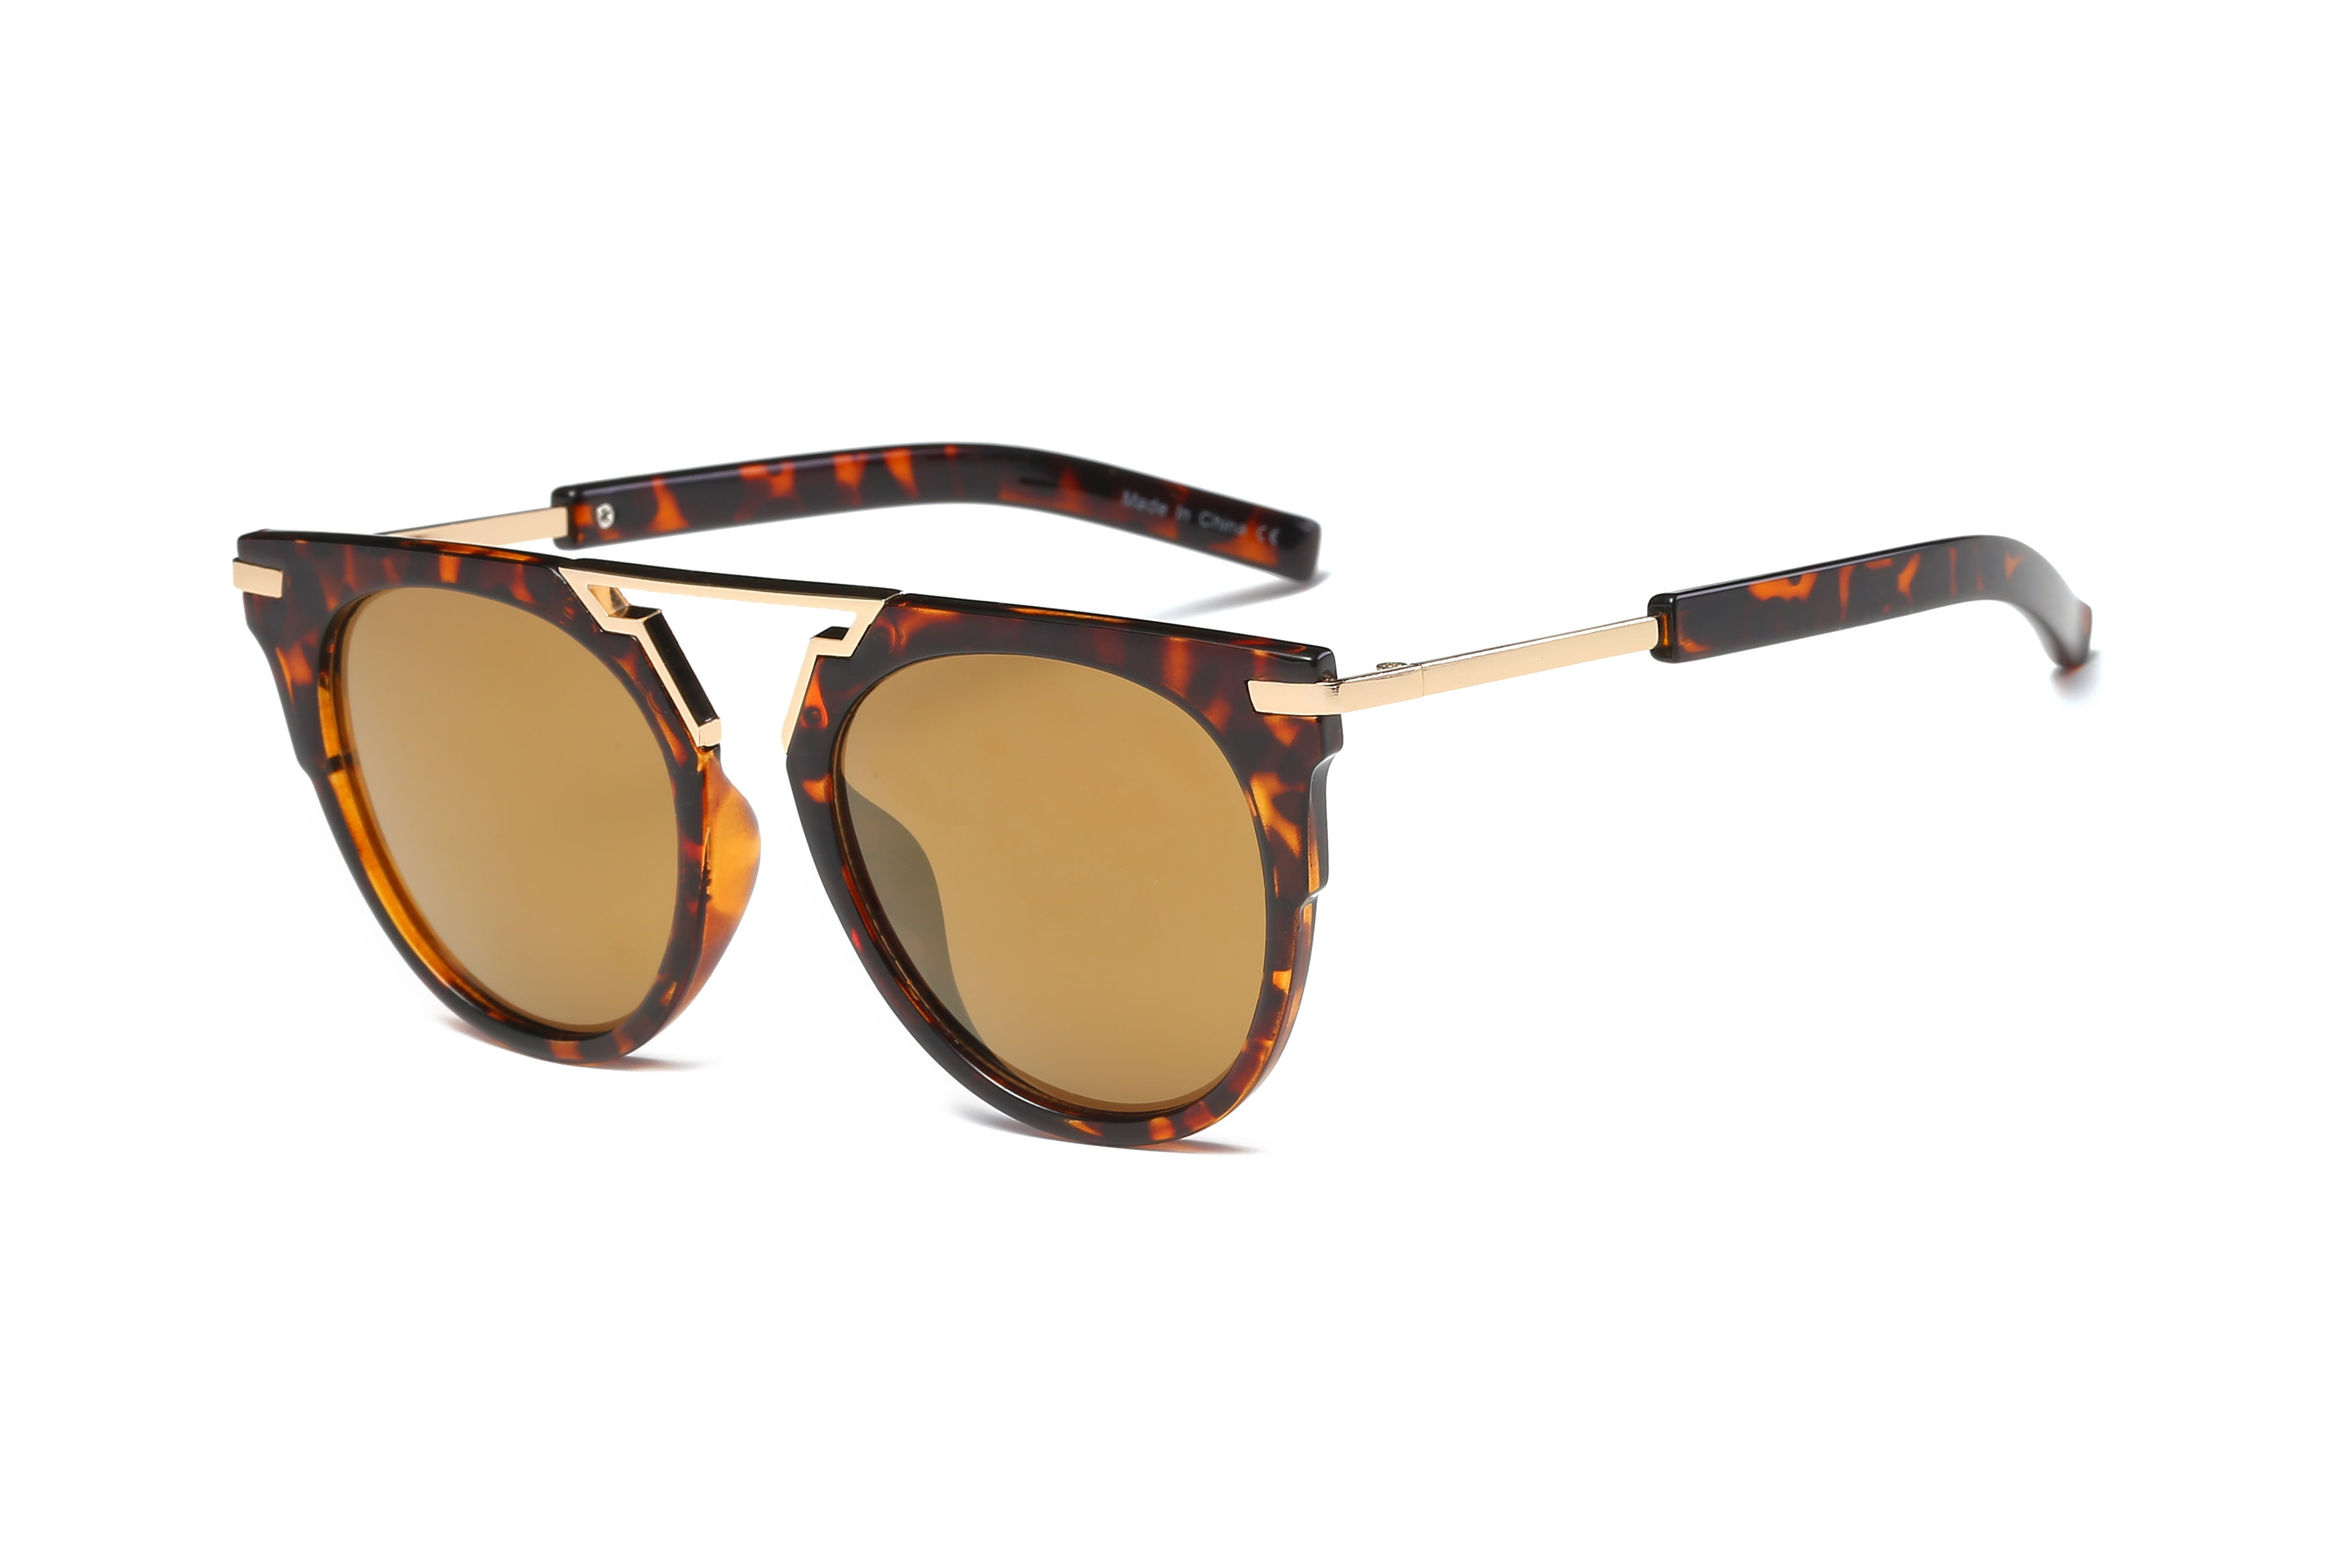 Akcessoryz-Women round browbar sunglasses with amber lens and tortoise frame